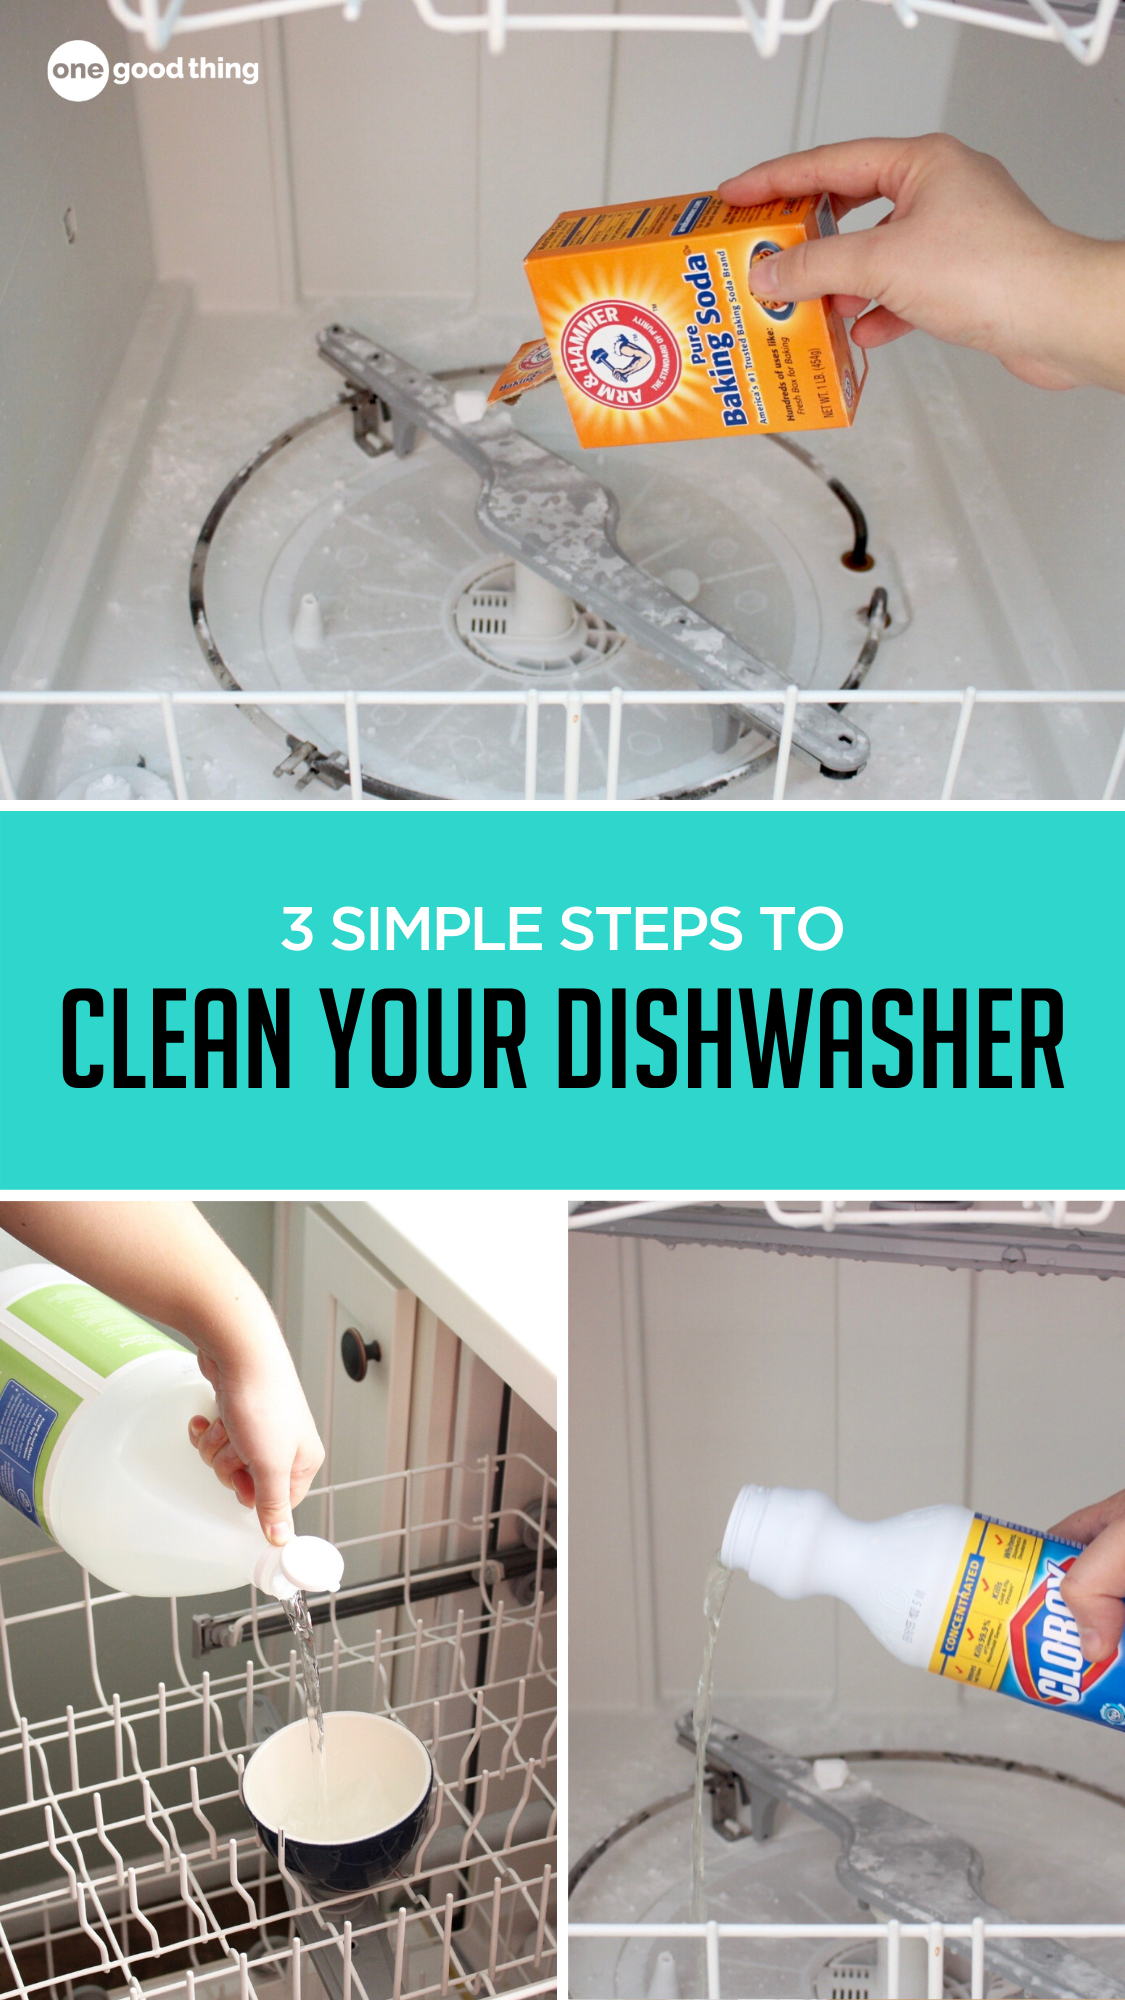 4bb4197afe1dc2f5e8fb6fcf4da86a48 - How To Get Rid Of Hard Water Stains In Dishwasher